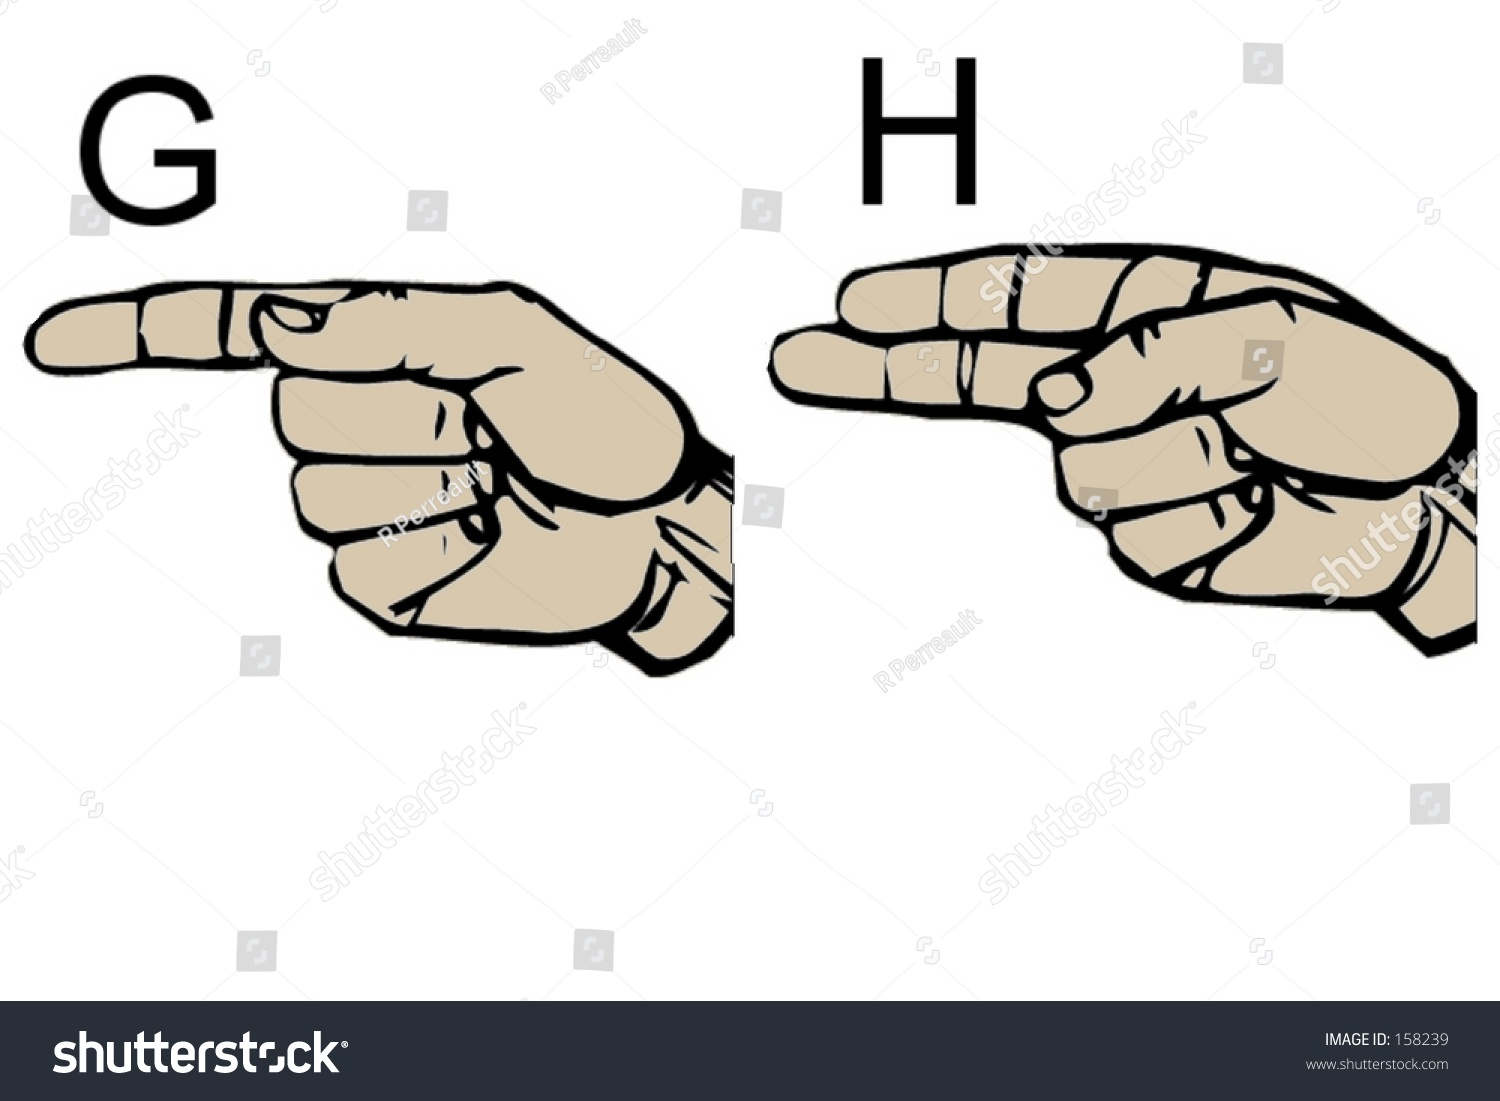 English Sign Language Letters G H Stock Photo Royalty Free